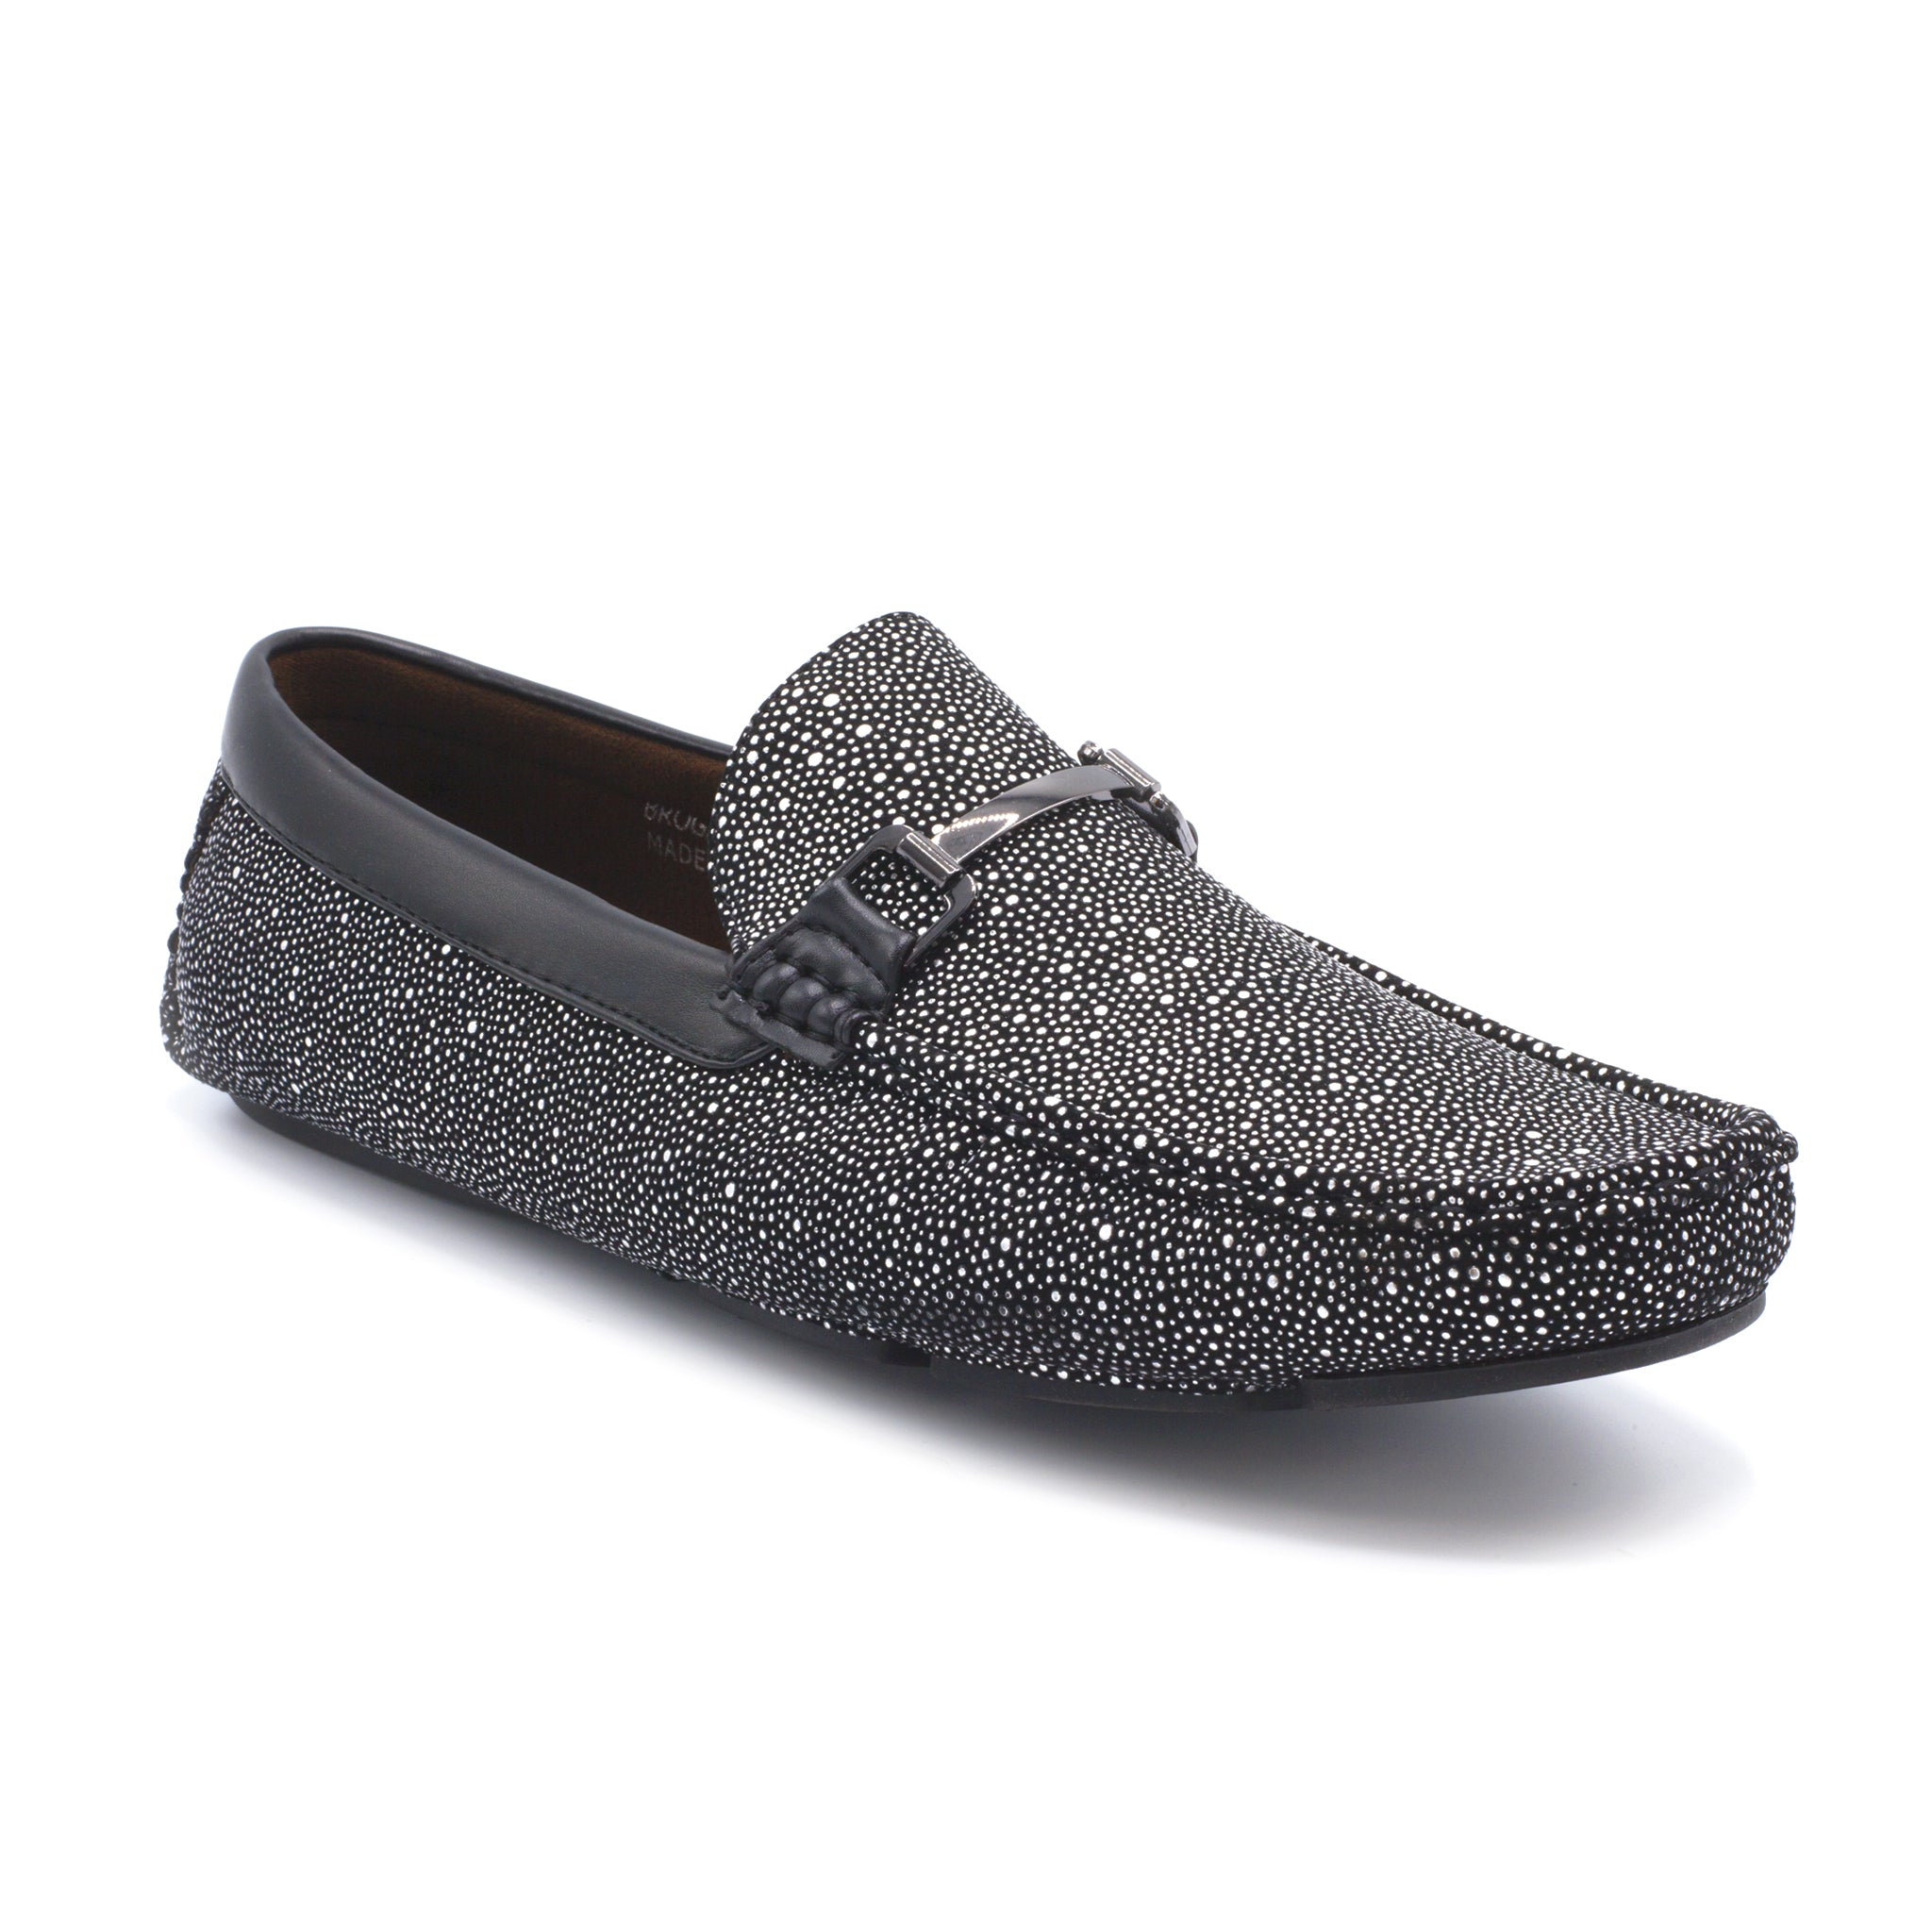 BROGAN SILVER SLIP ON CASUAL SHOES